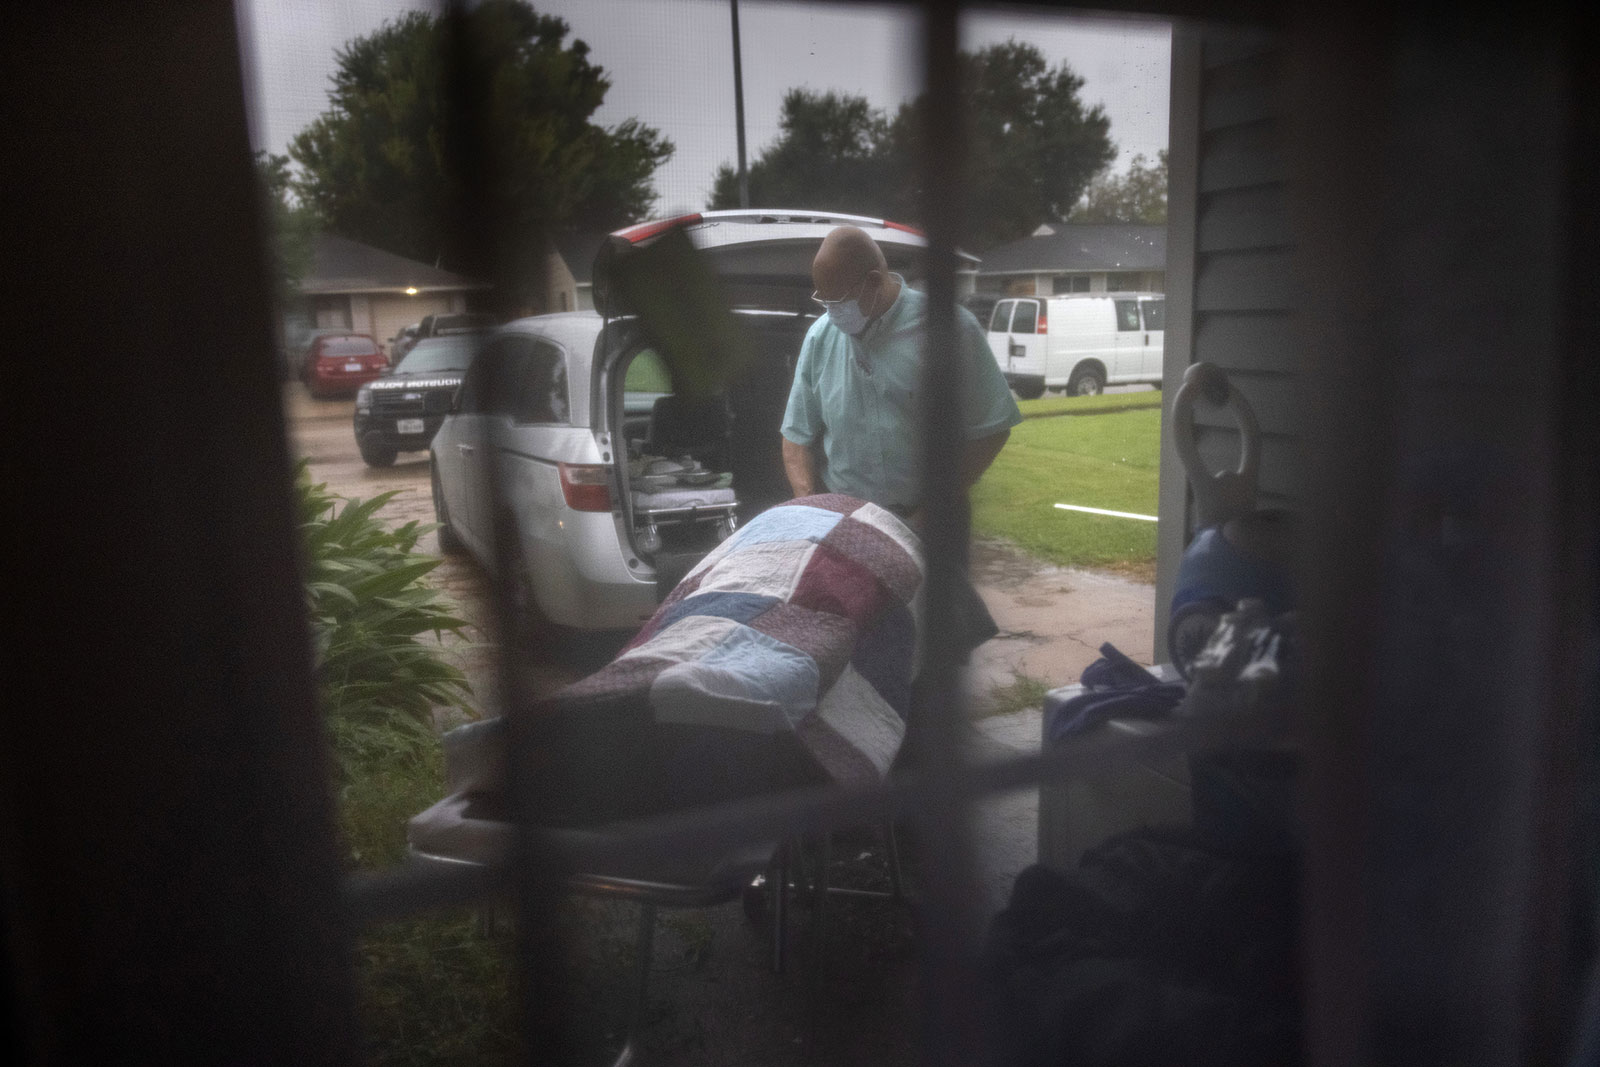 A funeral home worker transports the body of woman who died of Covid-19 at her home in Houston, Texas, on September 13.